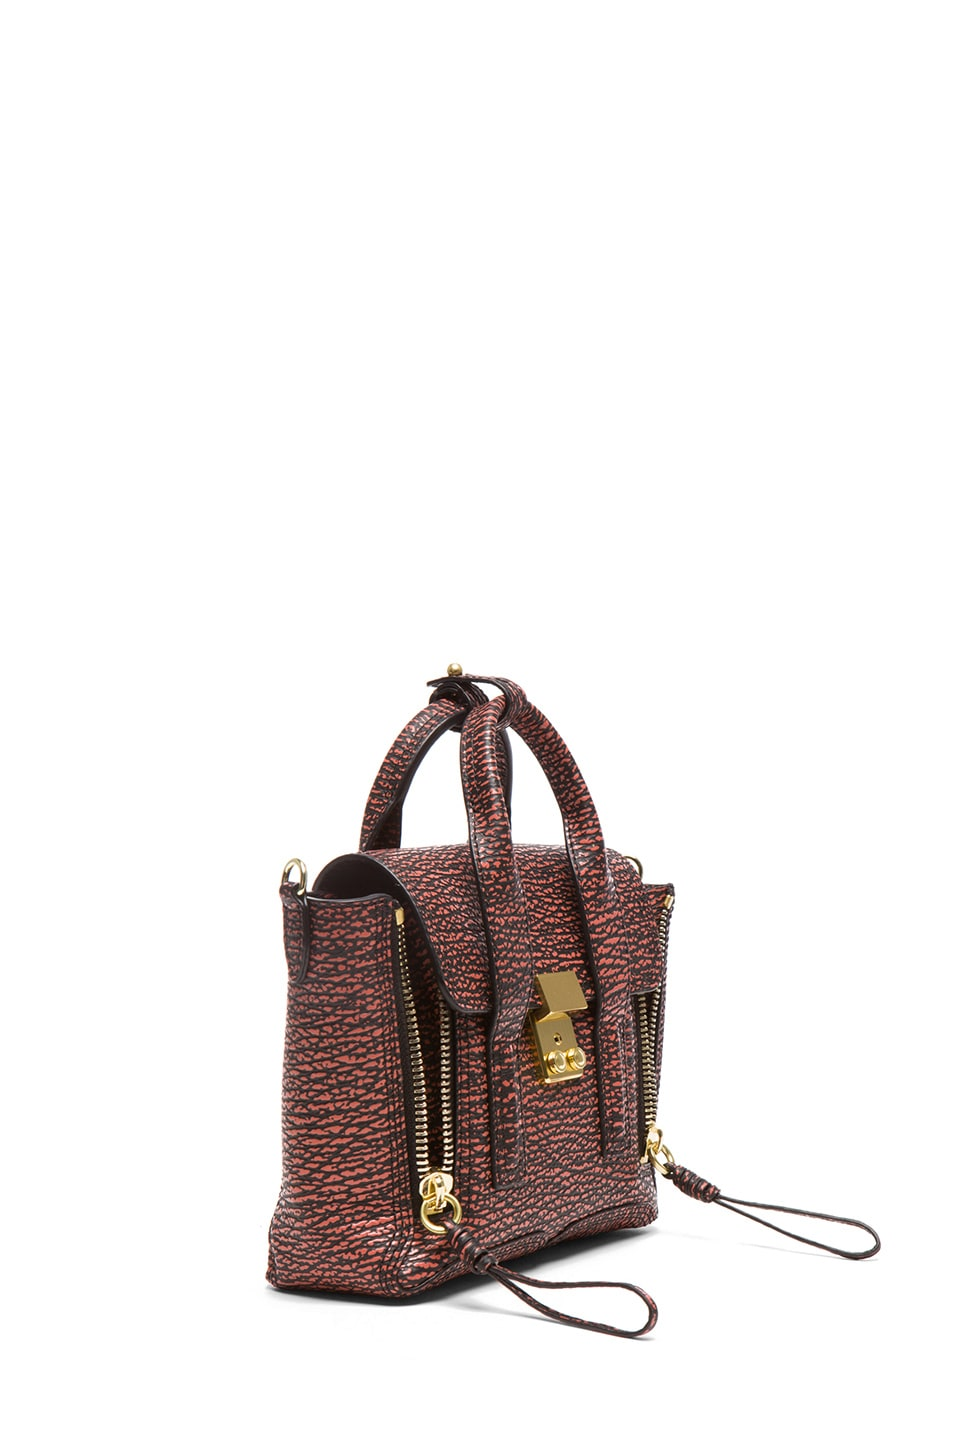 Image 3 of 3.1 phillip lim Mini Pashli Satchel in Black & Lava